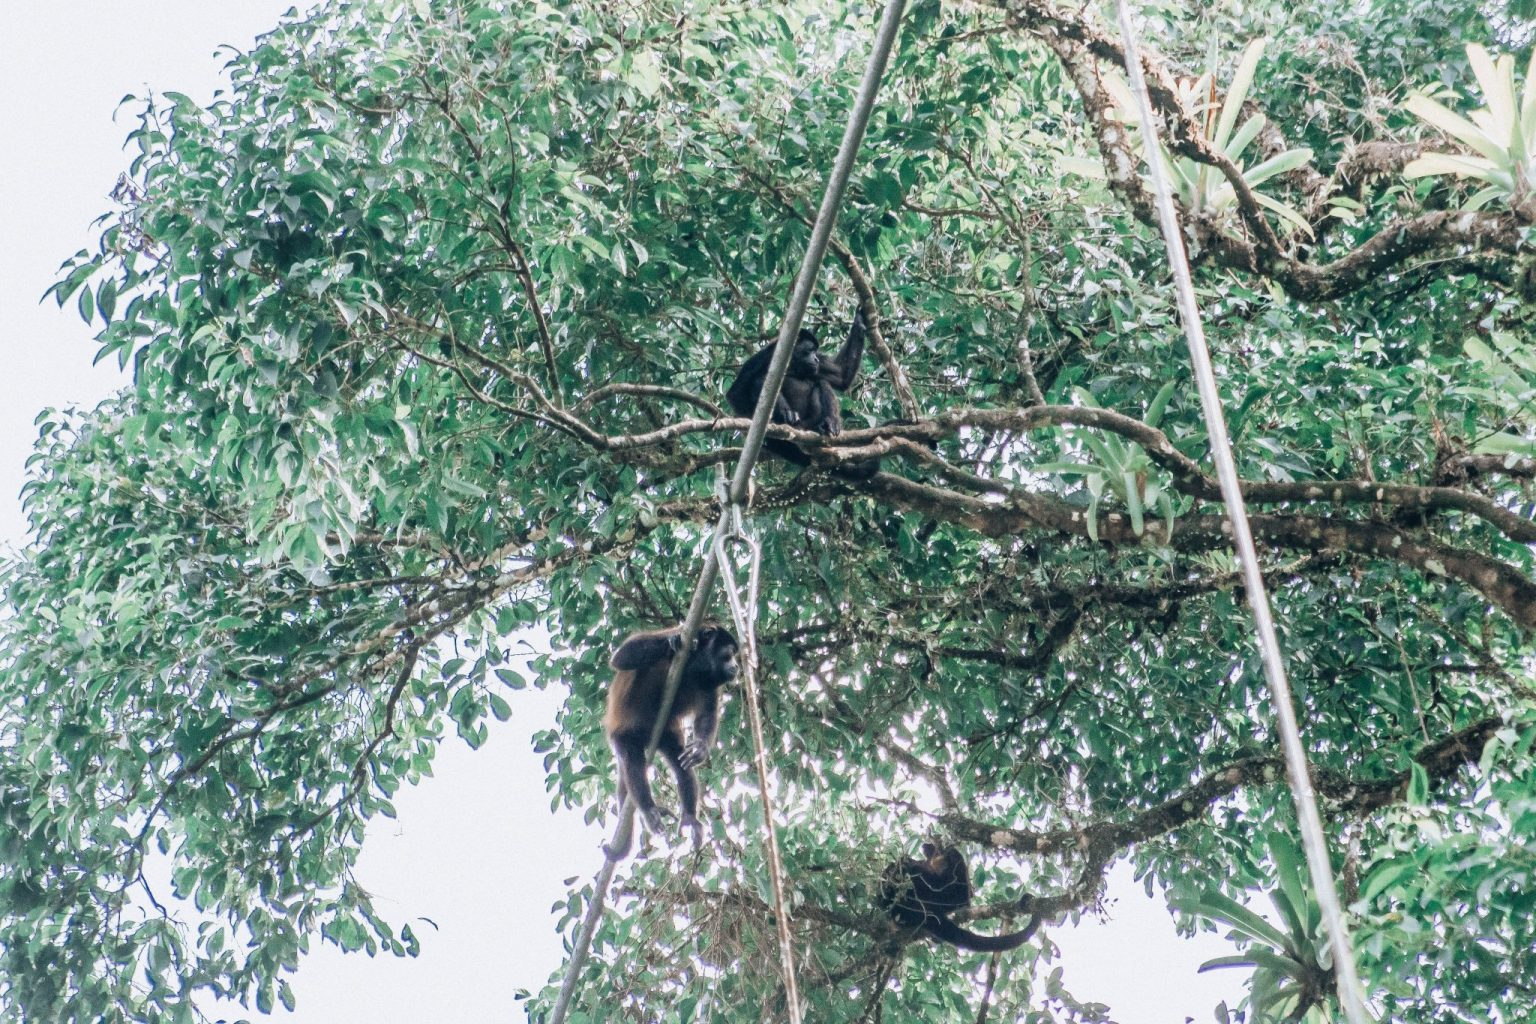 One of my favorite things to do in Costa Rica with kids is watch the monkeys in the trees